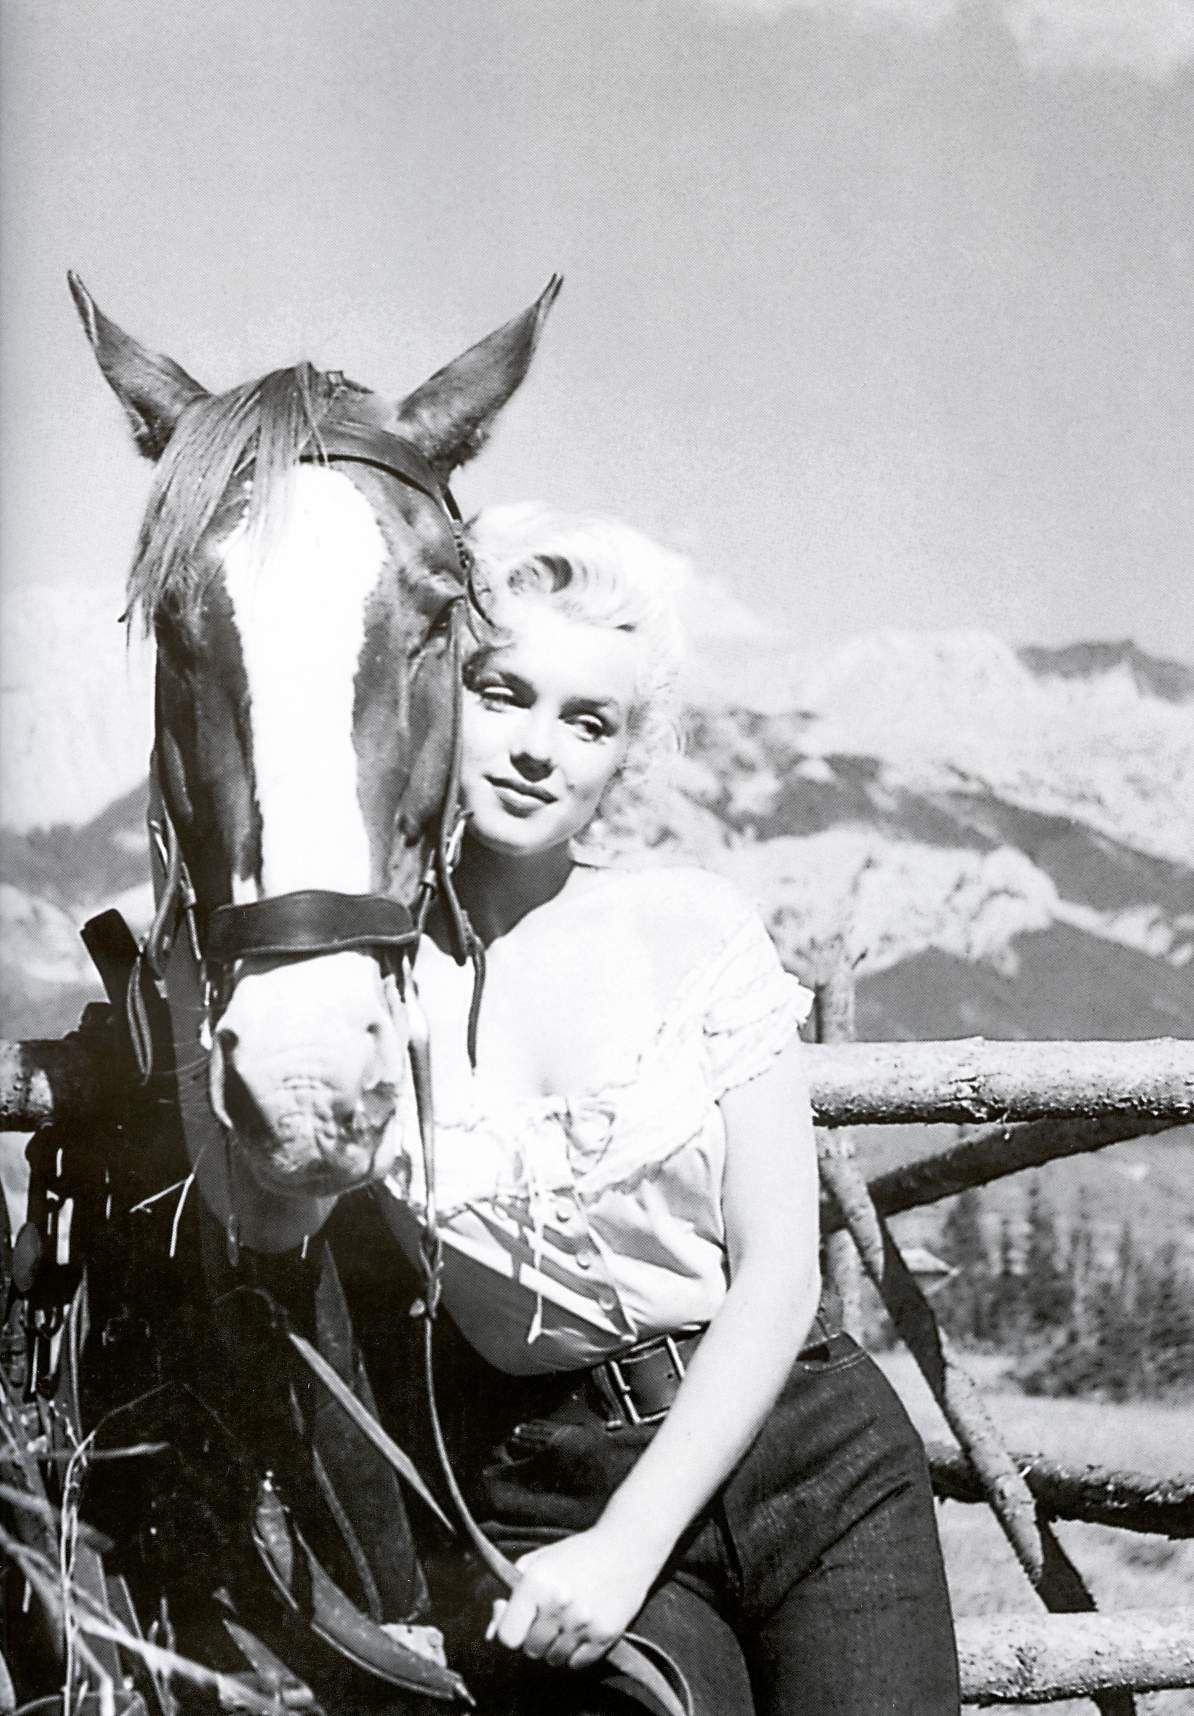 'The California climate is wonderful, but I love to see the seasons.' - Marilyn Monroe